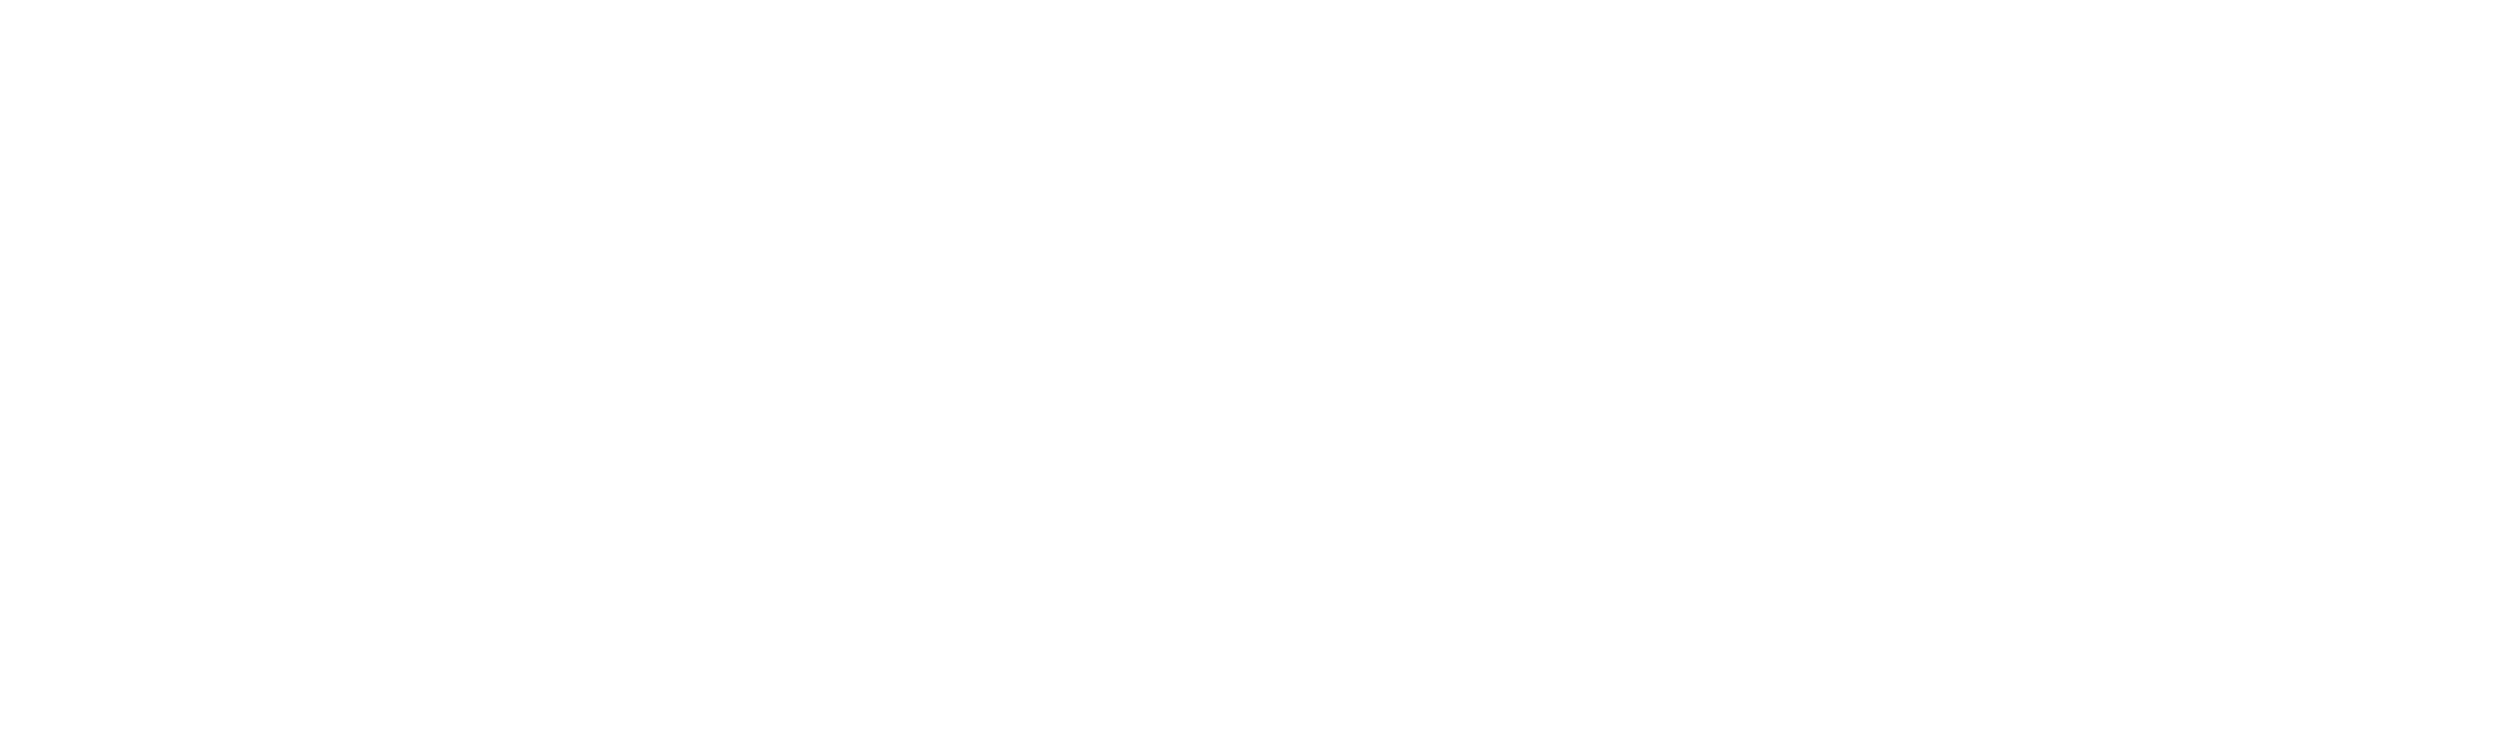 Rue_21_logo_Rue21.white.png